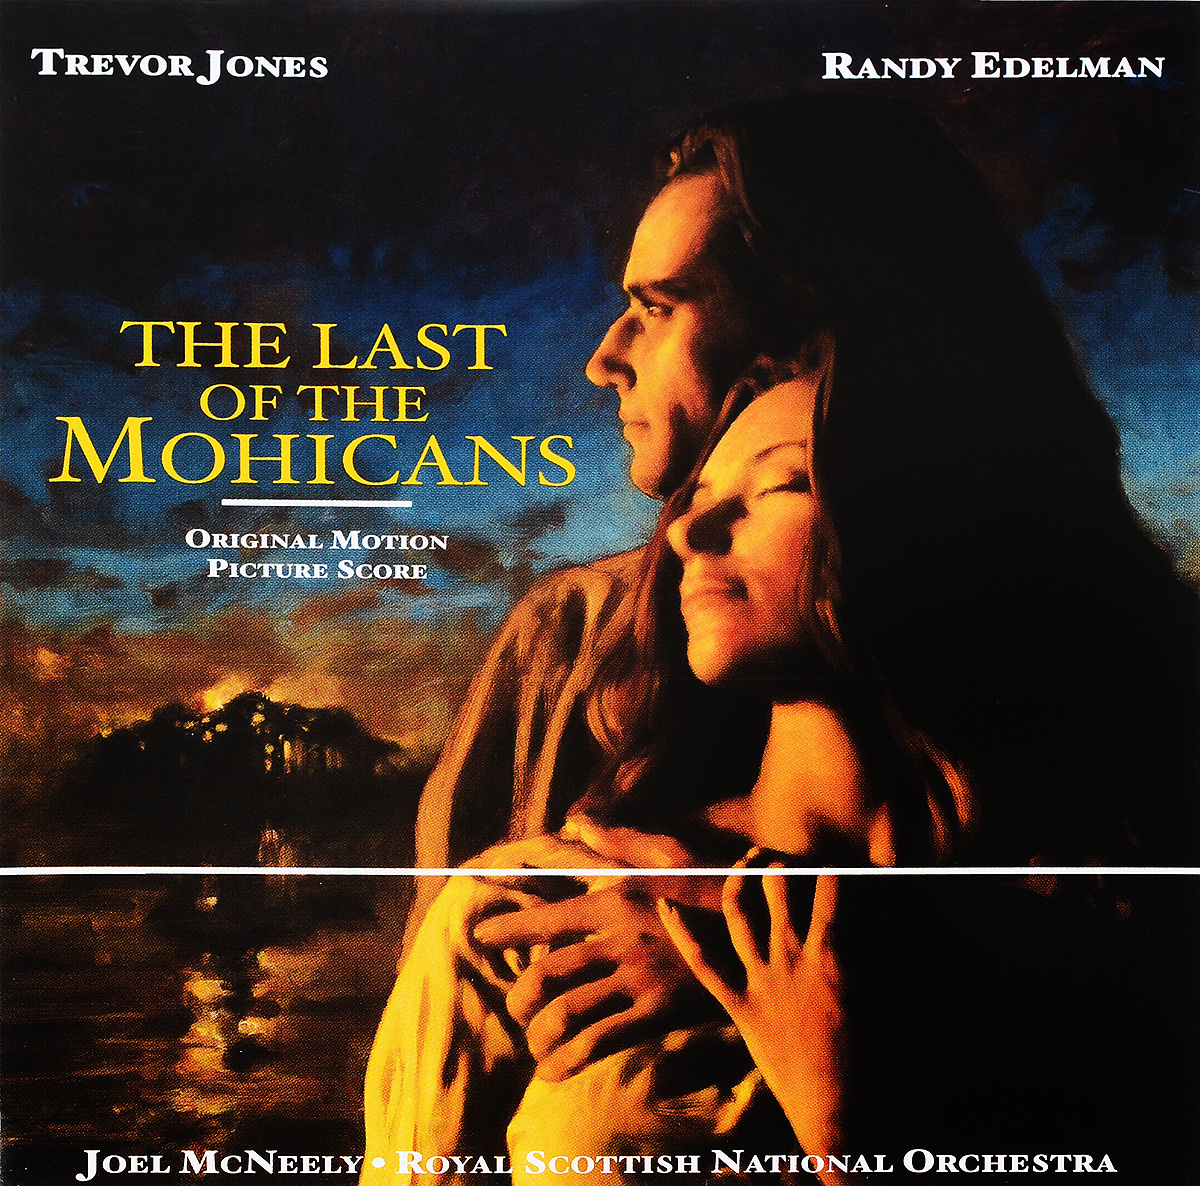 Zakazat.ru: Trevor Jones, Randy Edelman. The Last Of The Mohicans: Original Motion Picture Score